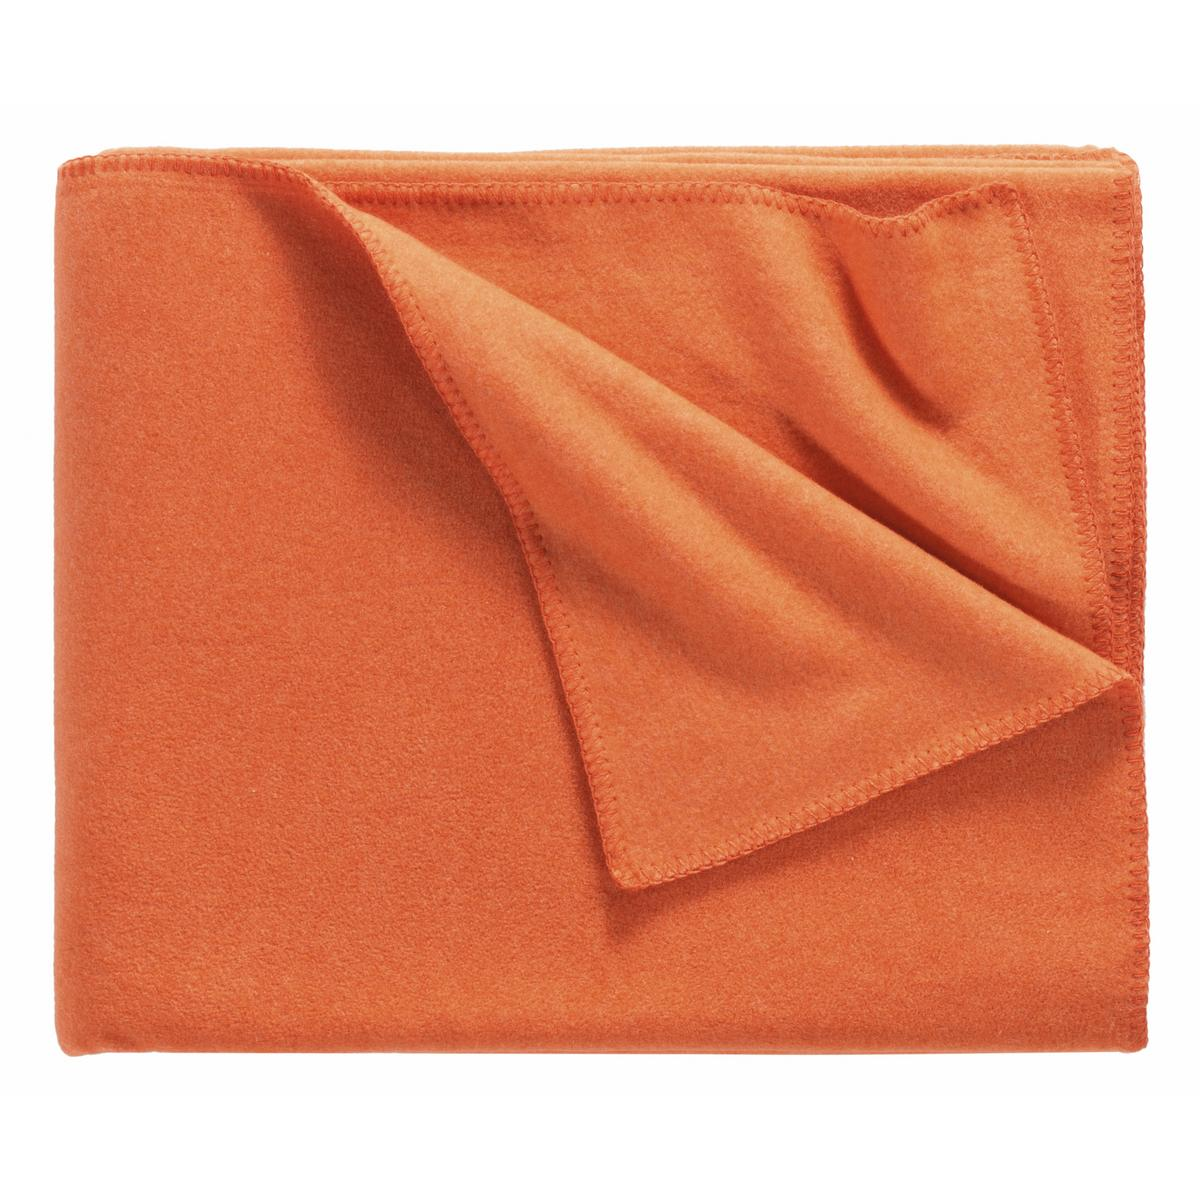 eagle products tony fleece blanket orange. Black Bedroom Furniture Sets. Home Design Ideas